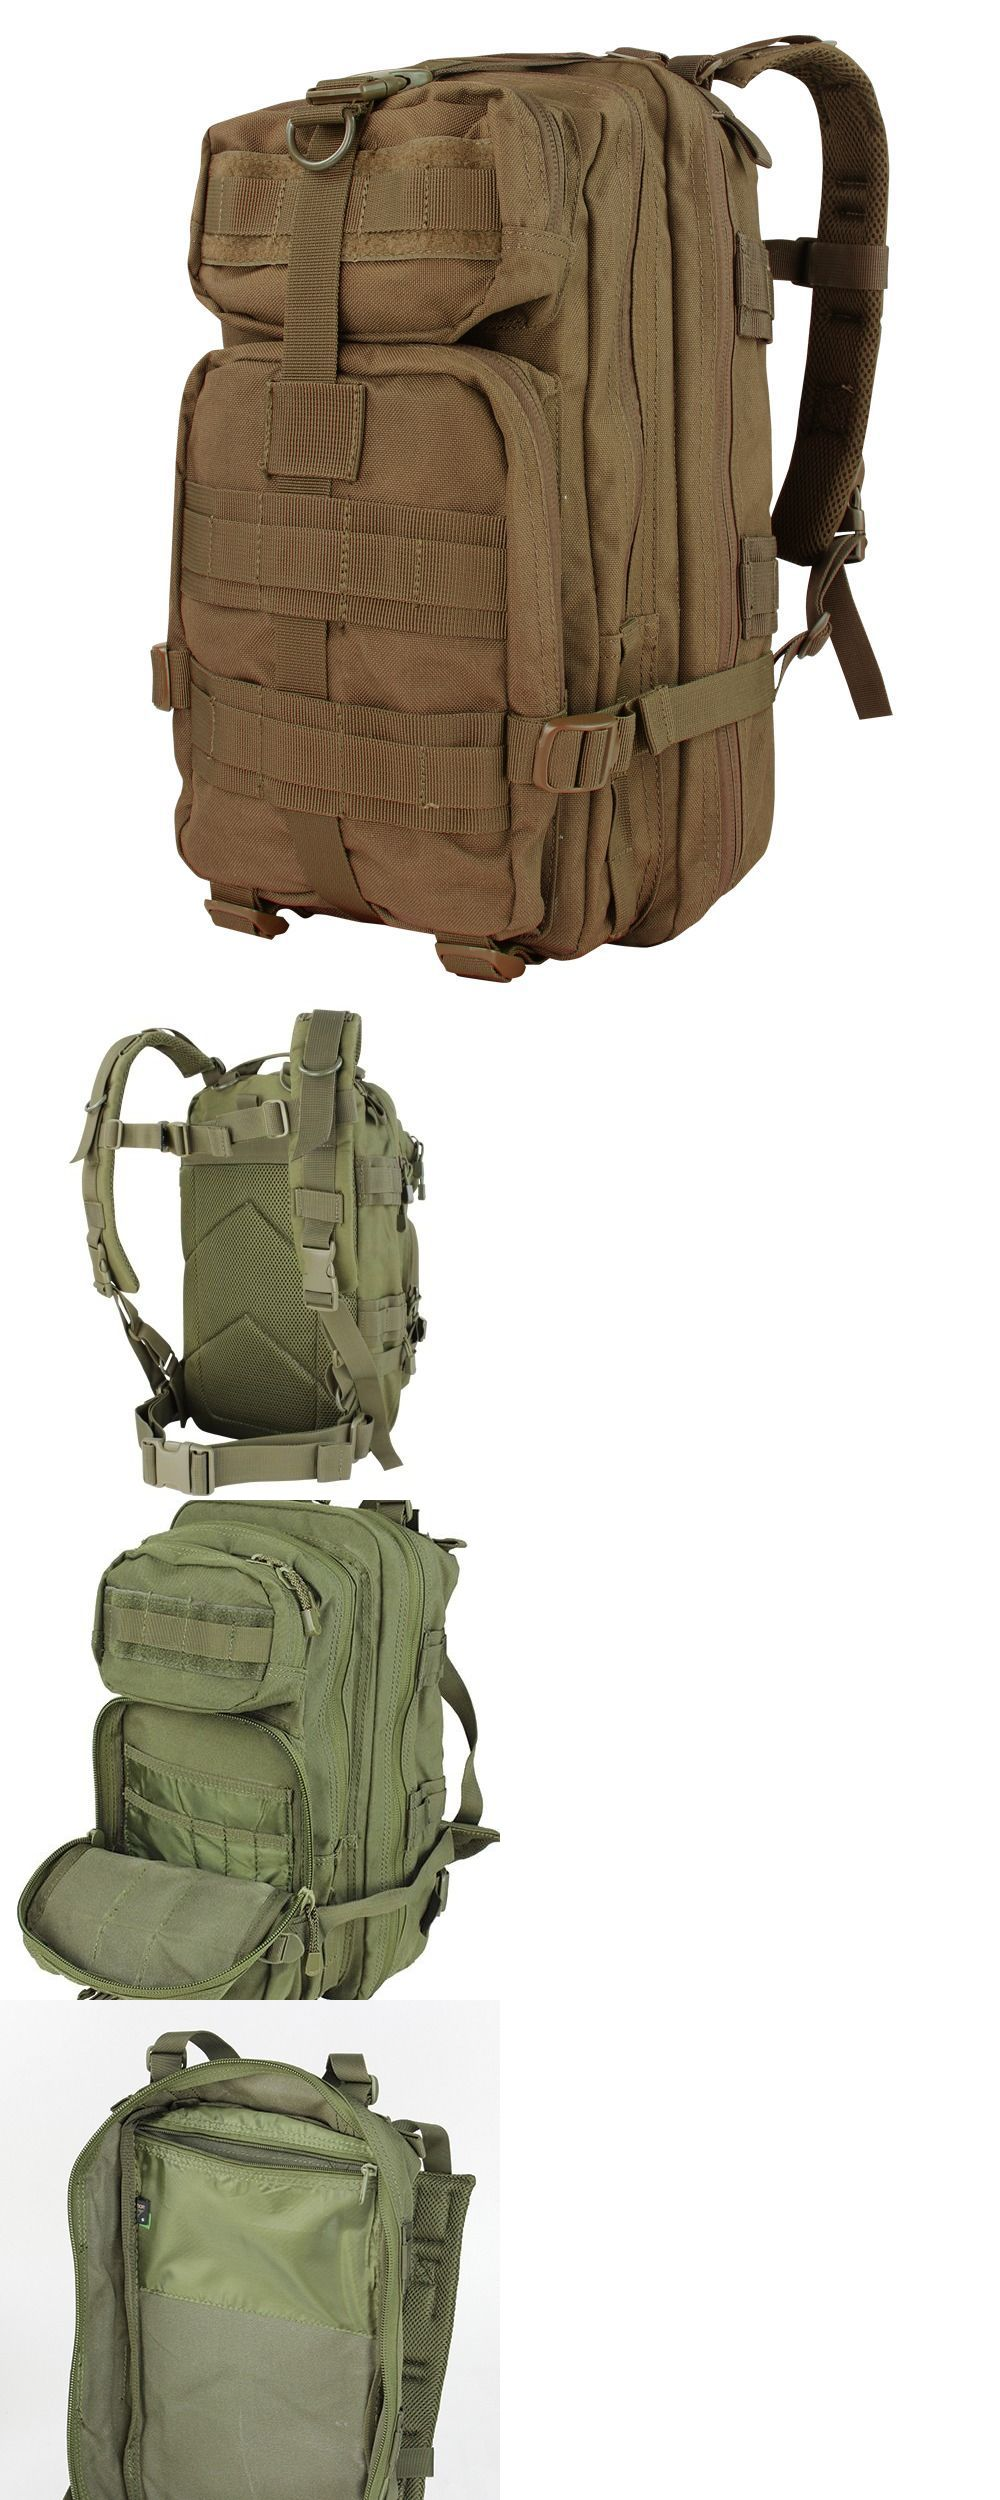 Day Packs 87122  Condor 126 Coyote Brown Compact Mission Assault Patrol Pack  Hiking Backpack - 6df2d14b0b